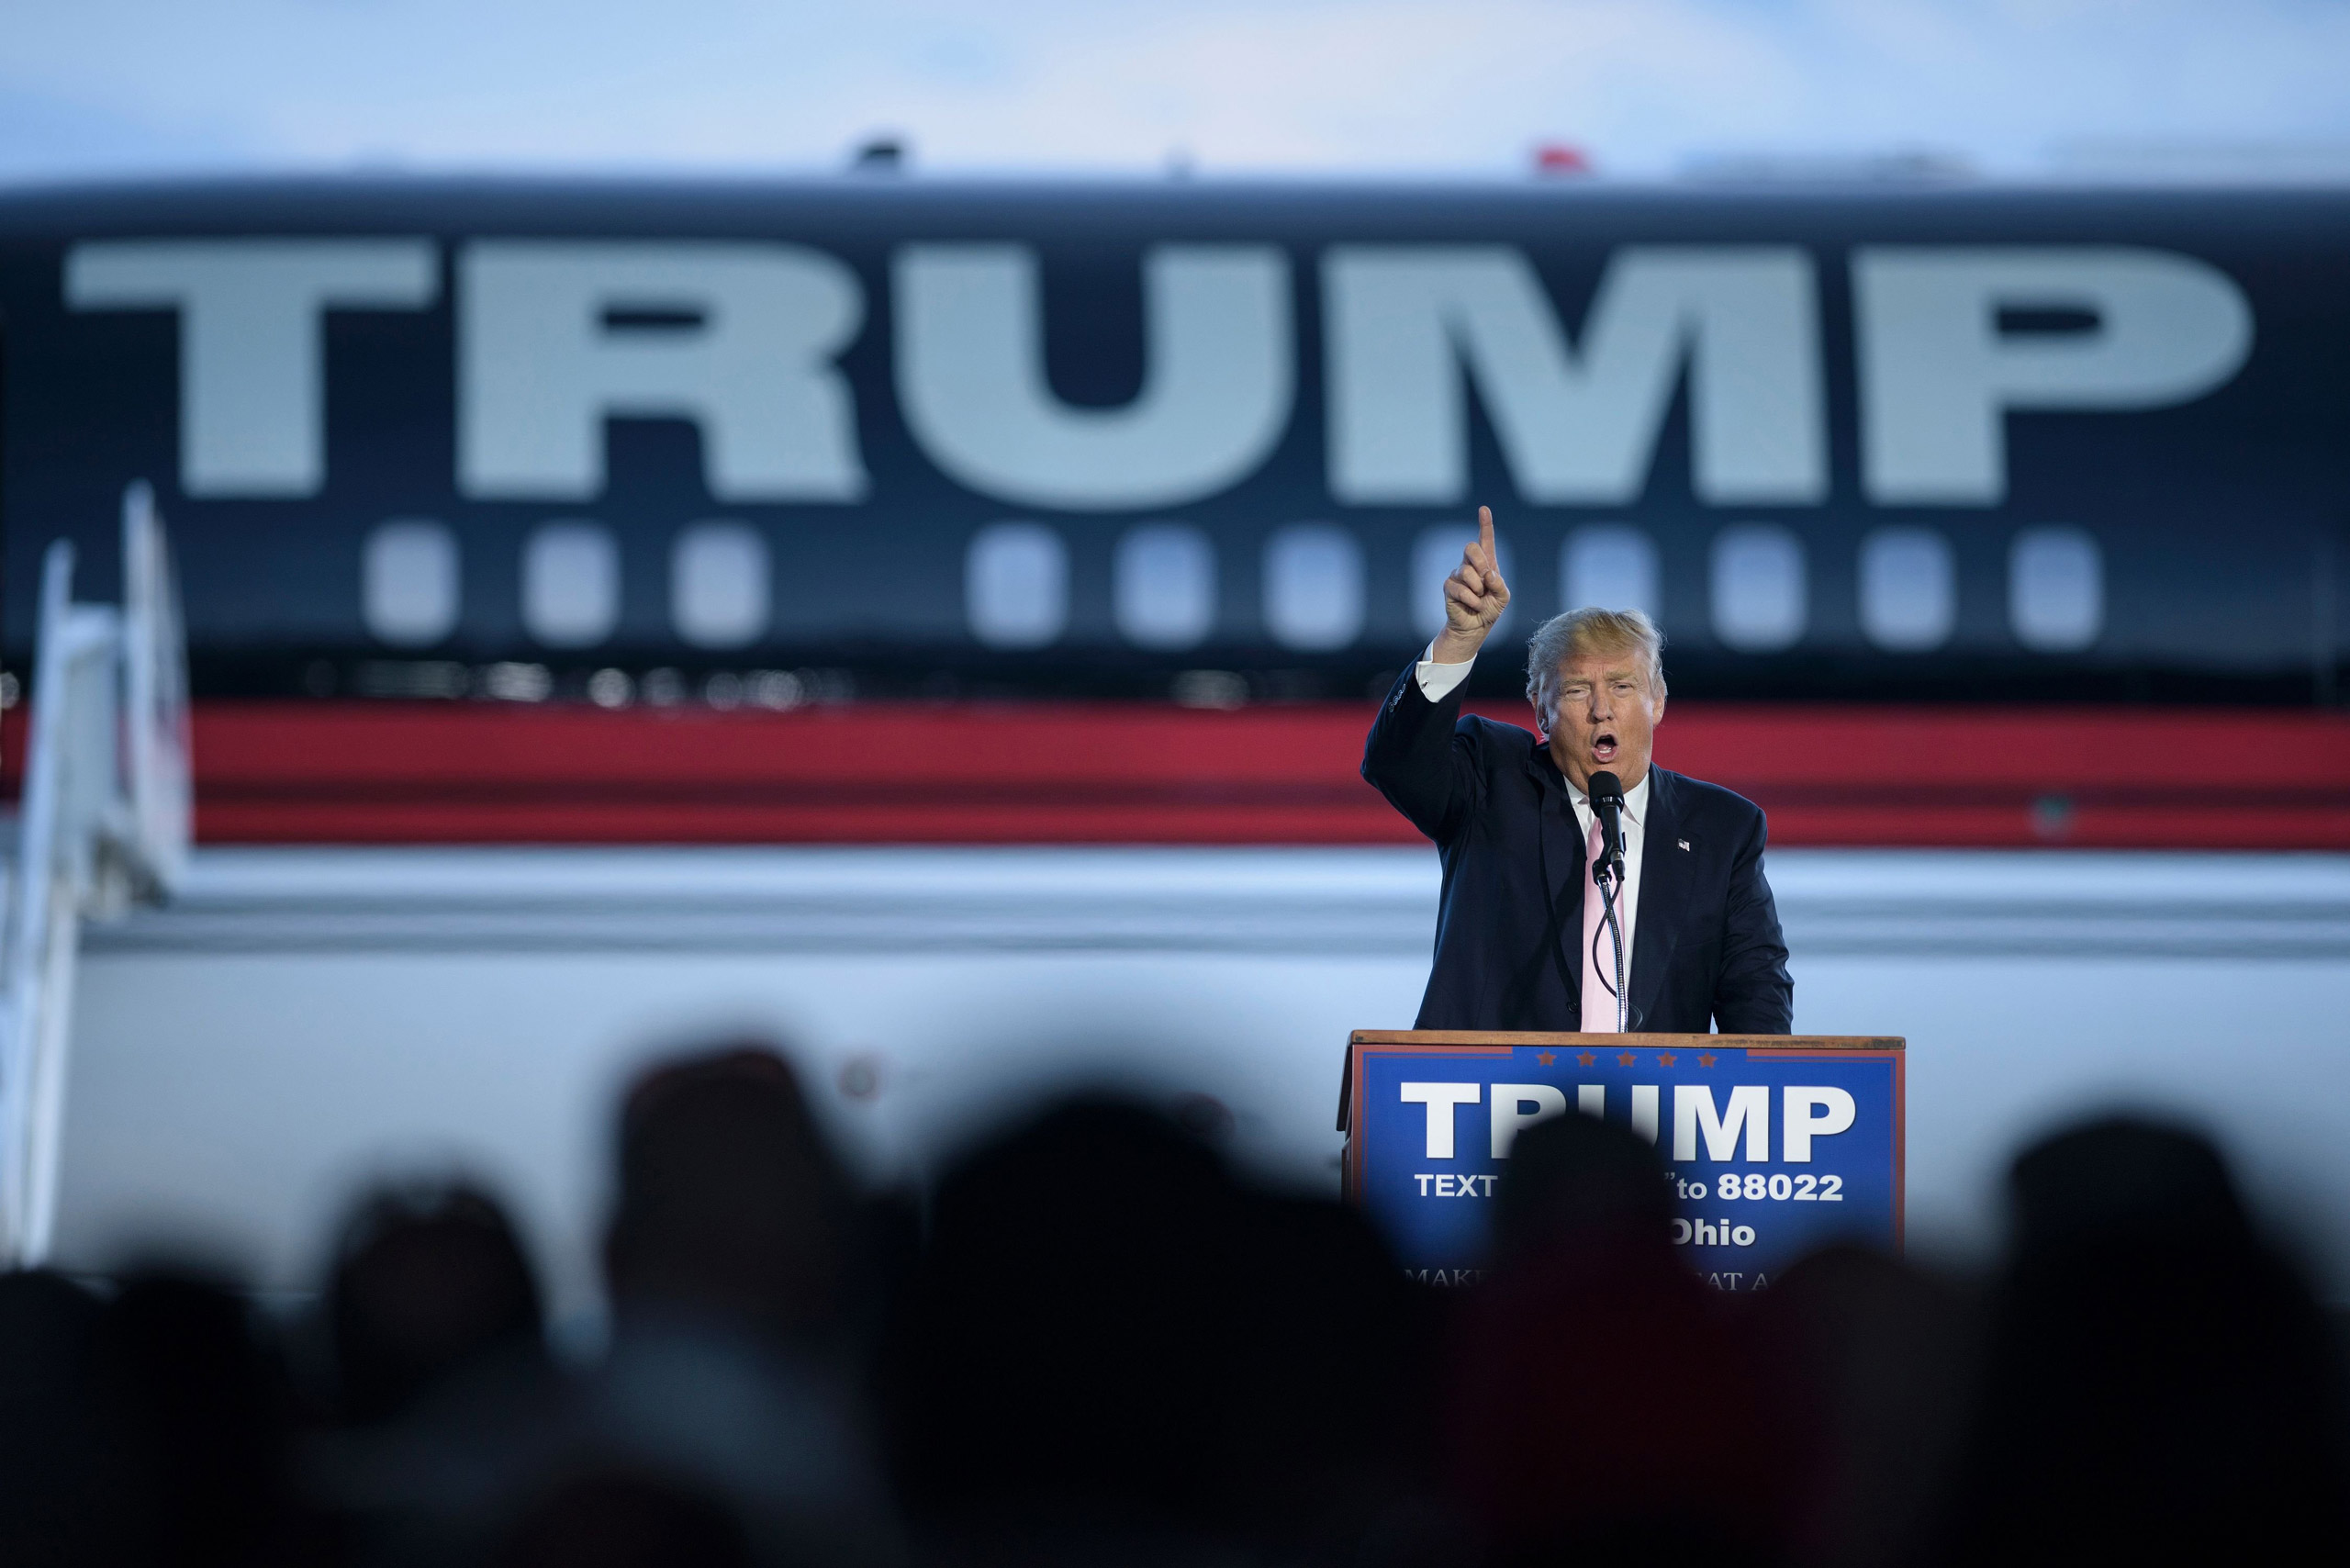 US presidential hopeful Donald Trump speaks during a rally March 14, 2016 in Vienna Center, Ohio.                     The six remaining White House hopefuls made a frantic push for votes March 14, 2016 on the eve of make-or-break nominating contests, with Donald Trump's Republican rivals desperate to bar his path after a weekend of violence on the campaign trail. / AFP PHOTO / Brendan SmialowskiBRENDAN SMIALOWSKI/AFP/Getty Images